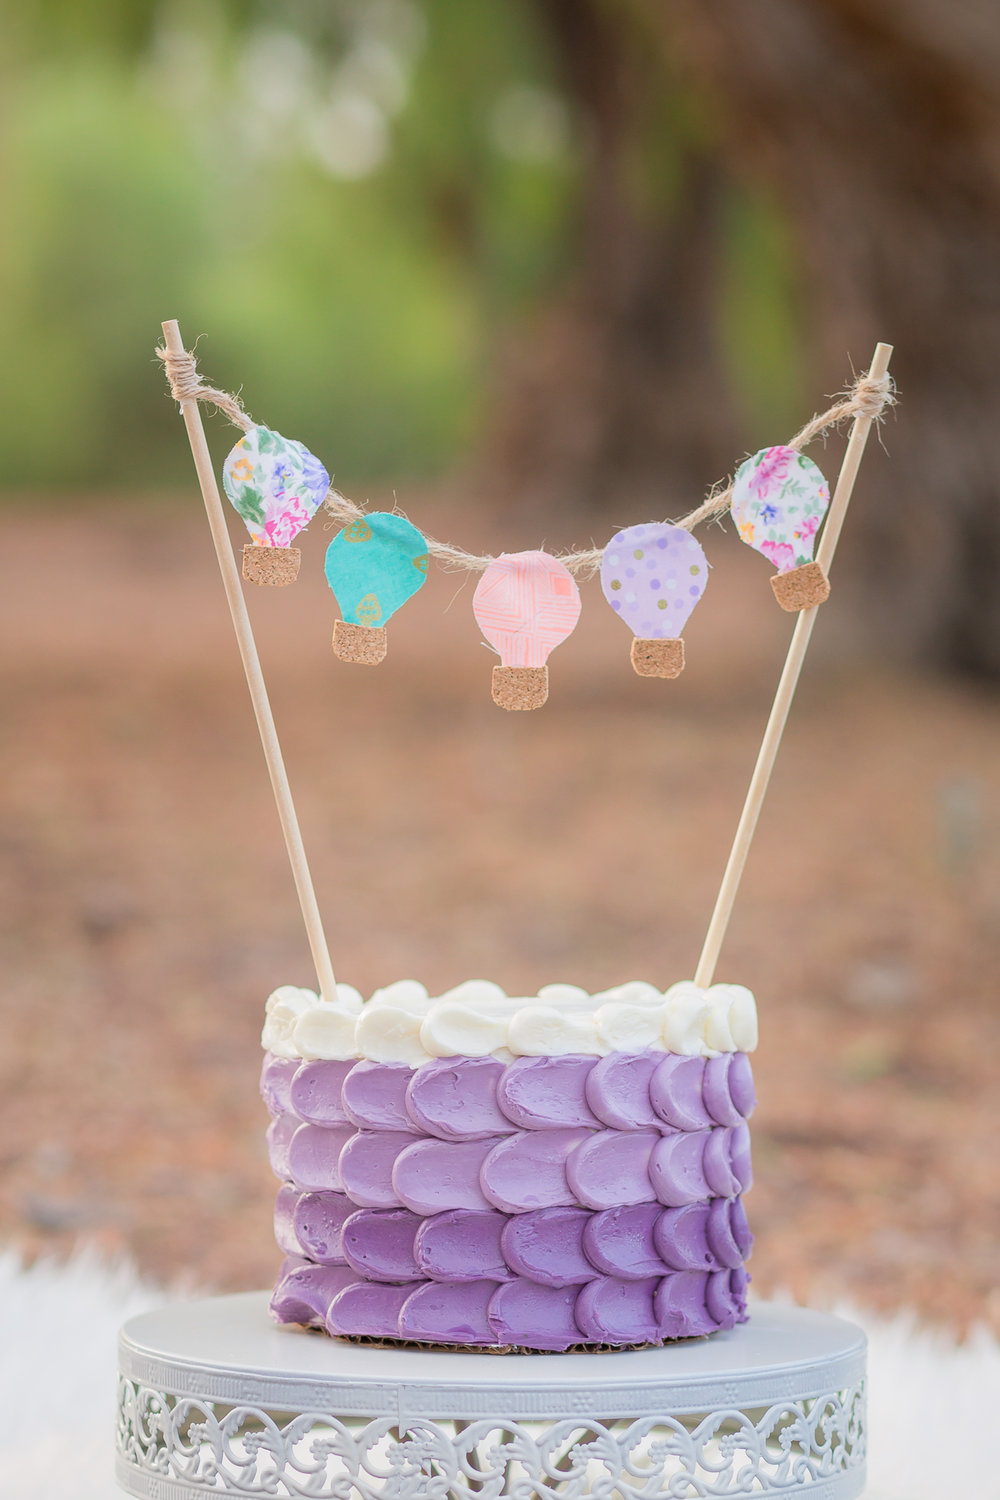 Hot Air Balloon Vintage Shabby Chic Girly Cake Smash - San Diego Oceanside Cake Smash Photographer-4.jpg